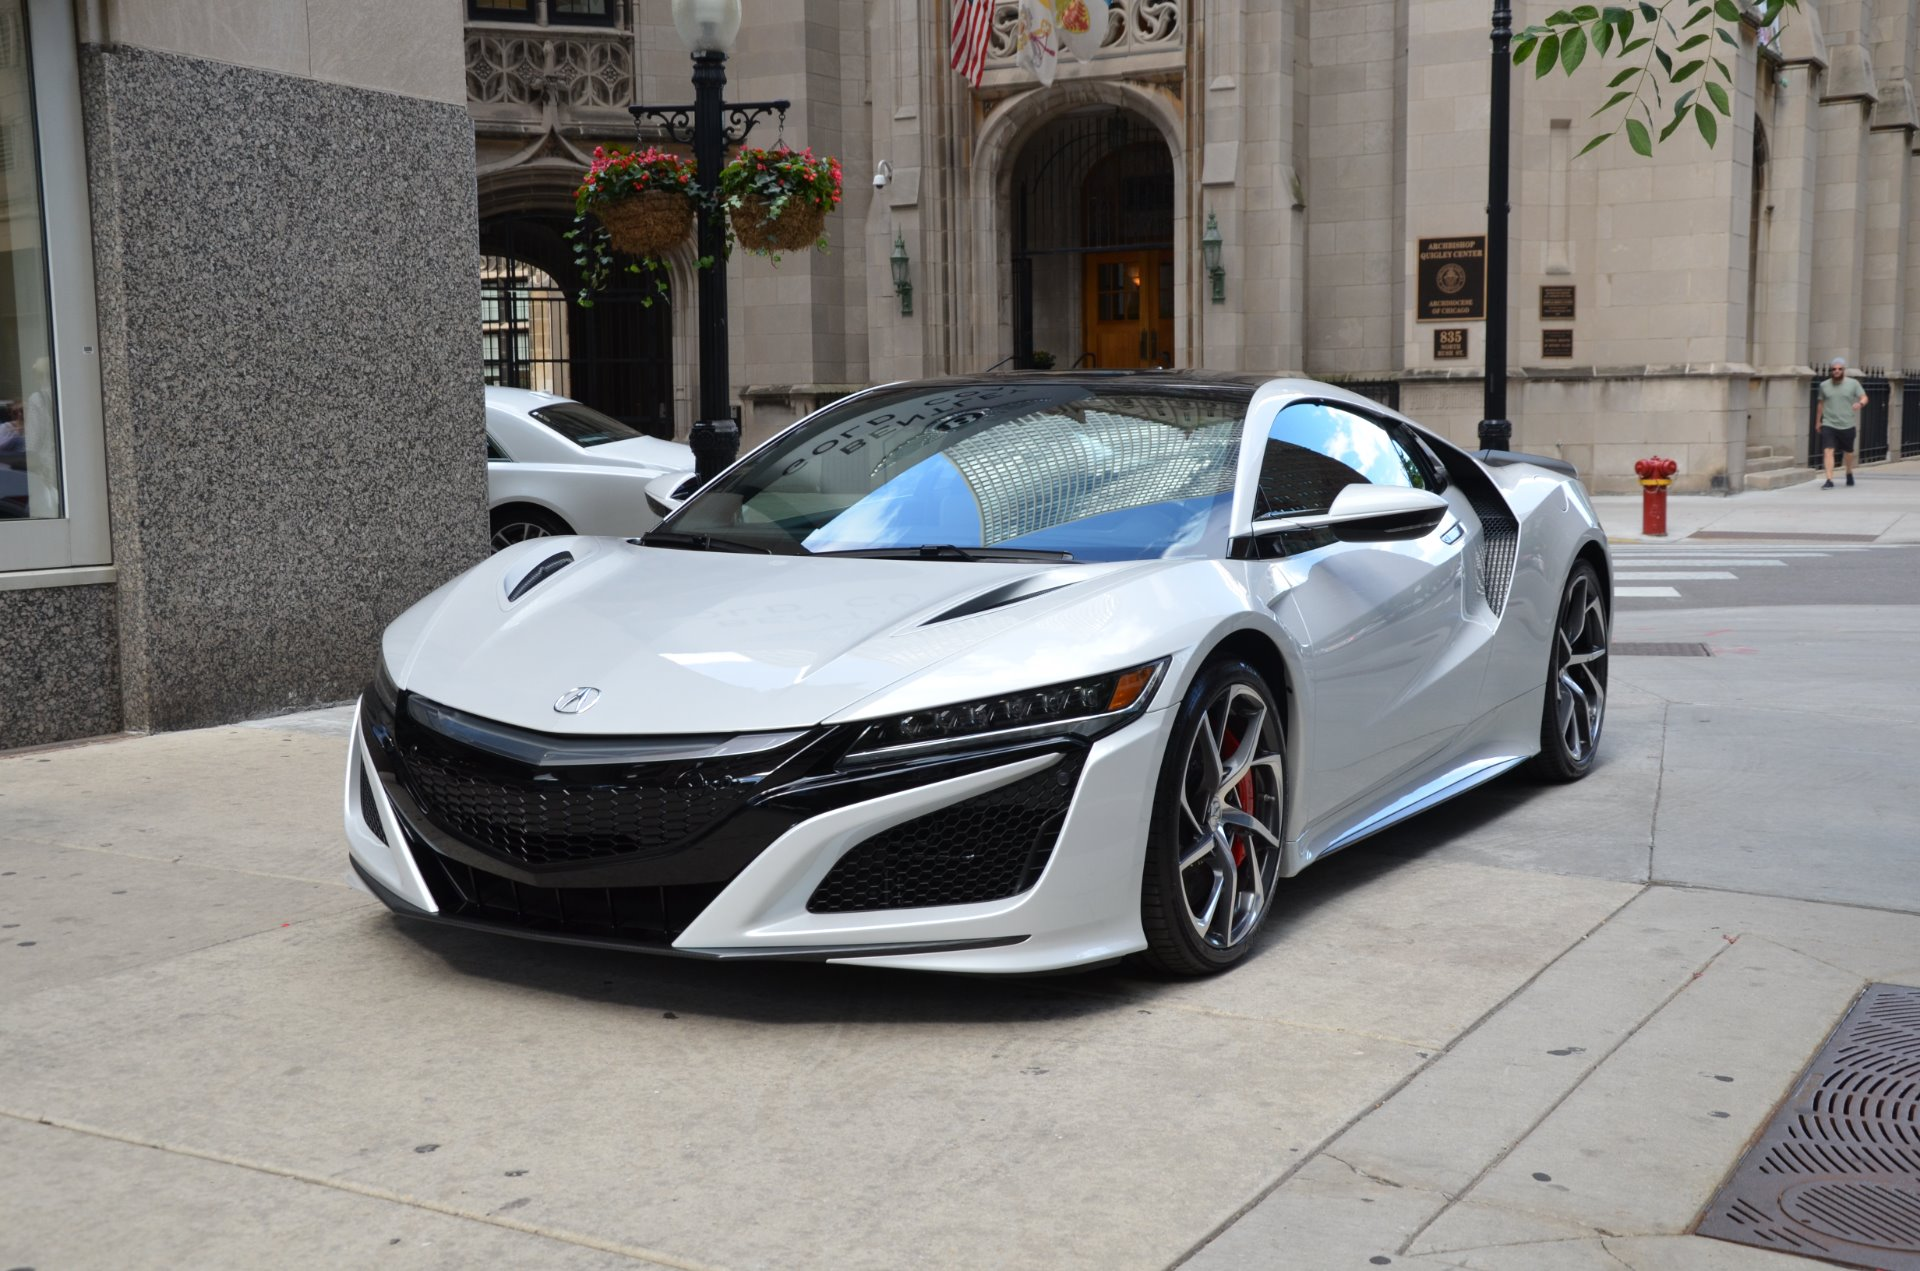 gallery acura barely carscoops a formula photo red auction yourself used nsx have